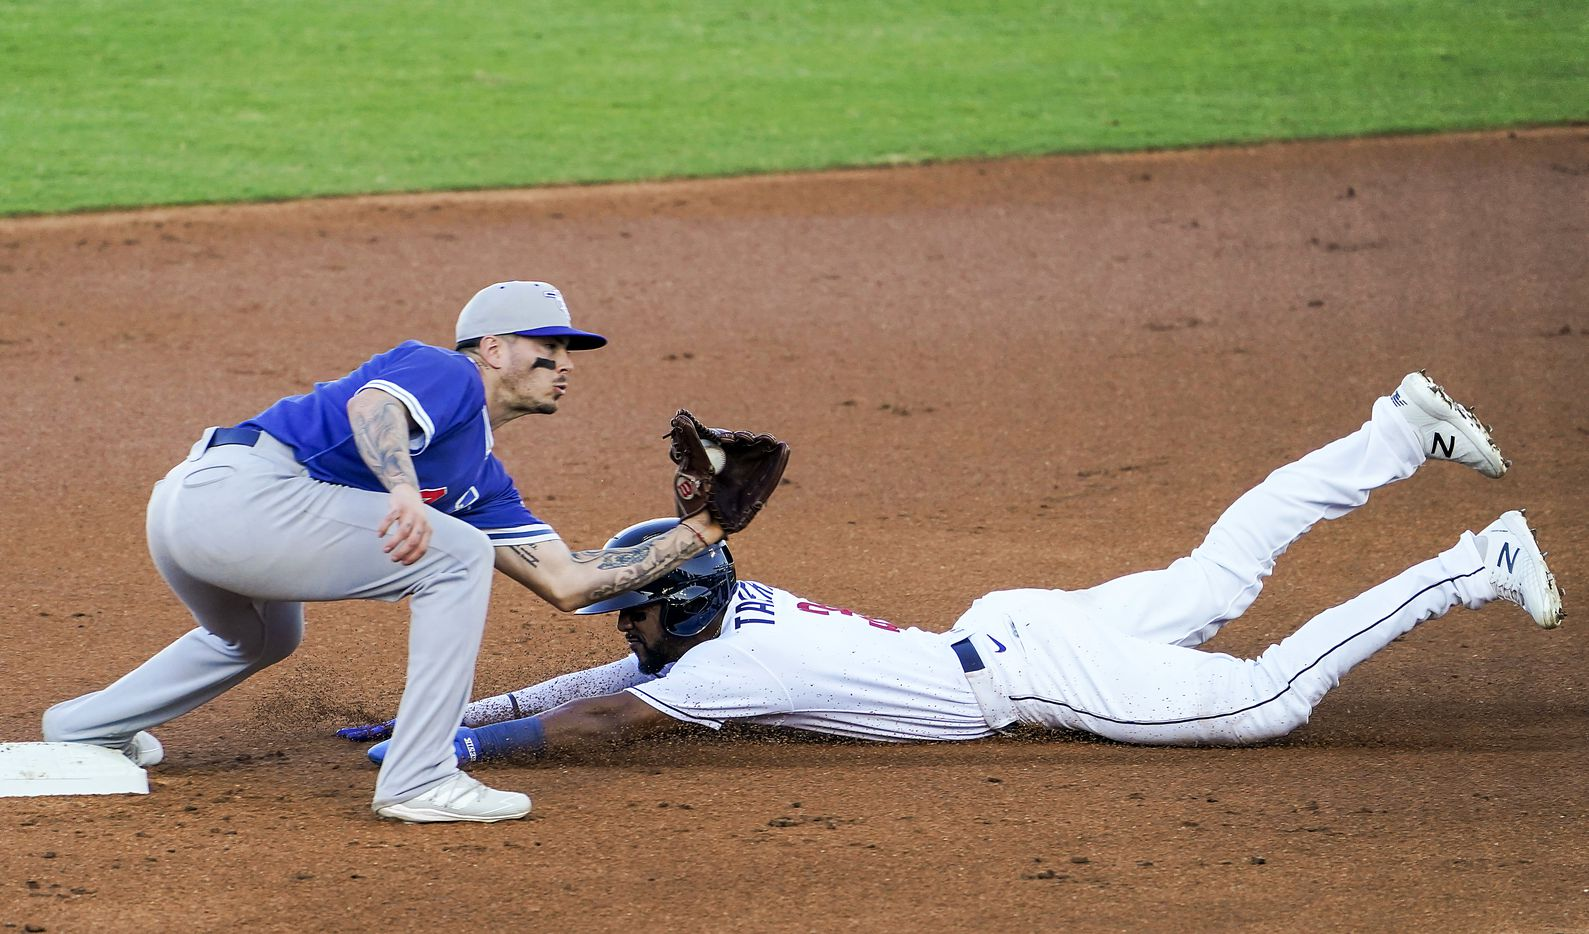 Round Rock Express outfielder Leody Taveras steals second base ahead of the tag from Oklahoma City Dodgers second baseman Omar Estevez during the first inning at Dell Diamond on Thursday, May 6, 2021, in Round Rock, Texas.